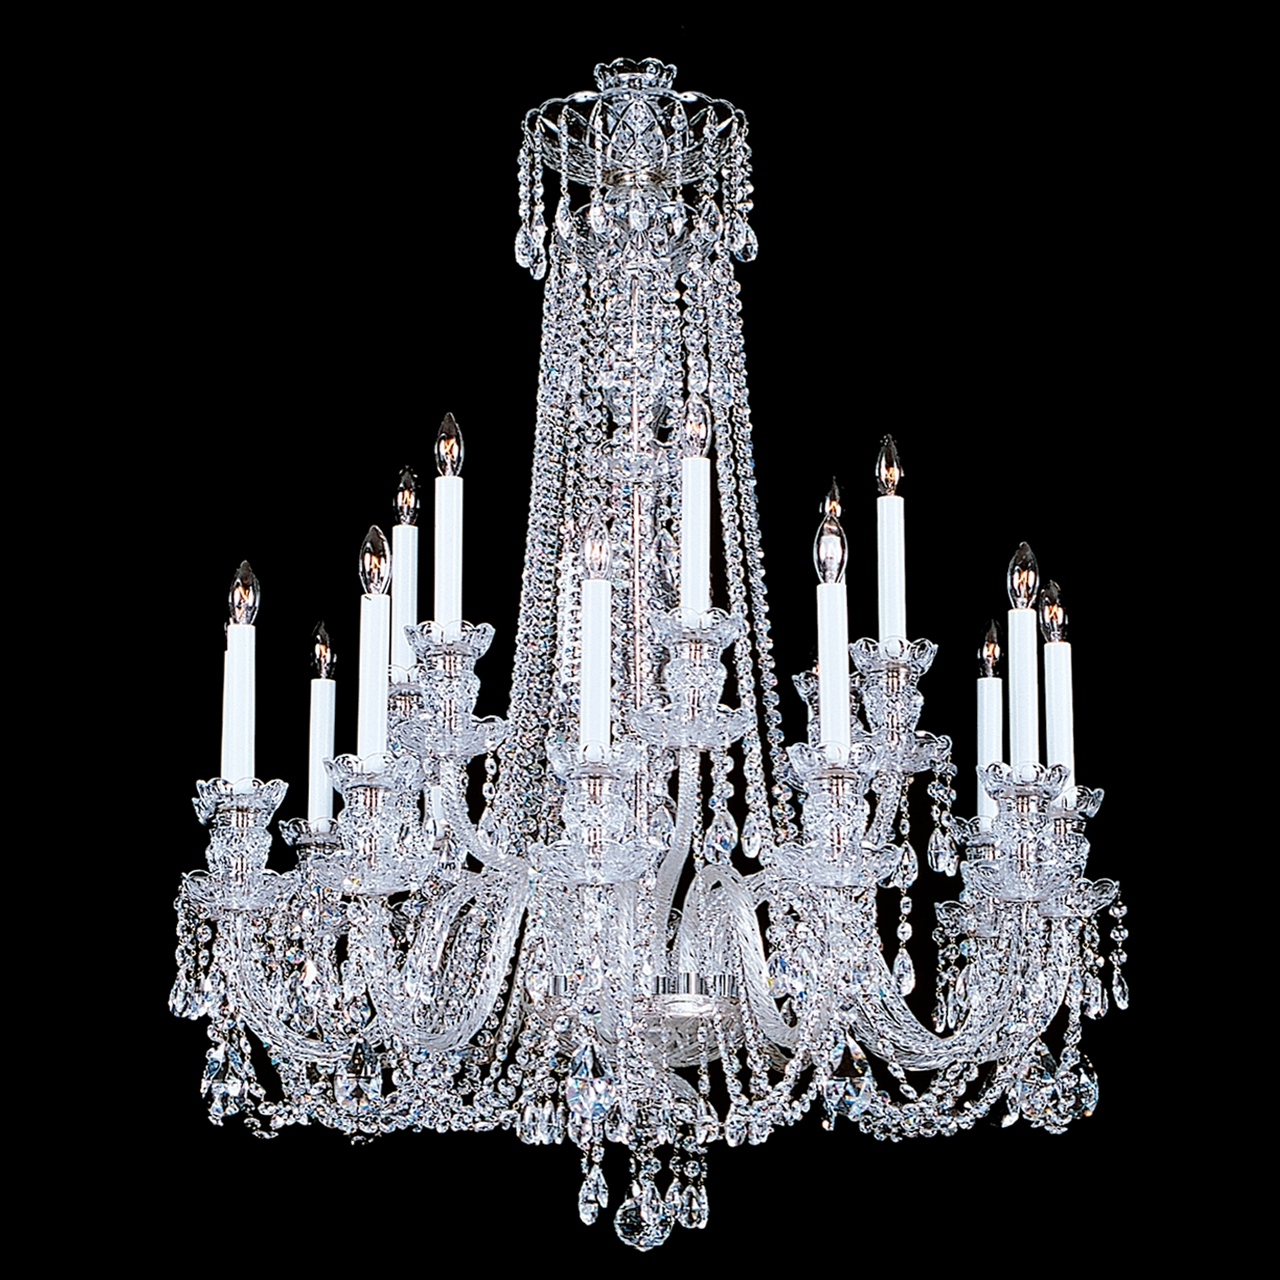 Living Room High Quality Crystal Chandeliers For Home Lighting Throughout Florian Crystal Chandeliers (View 5 of 25)